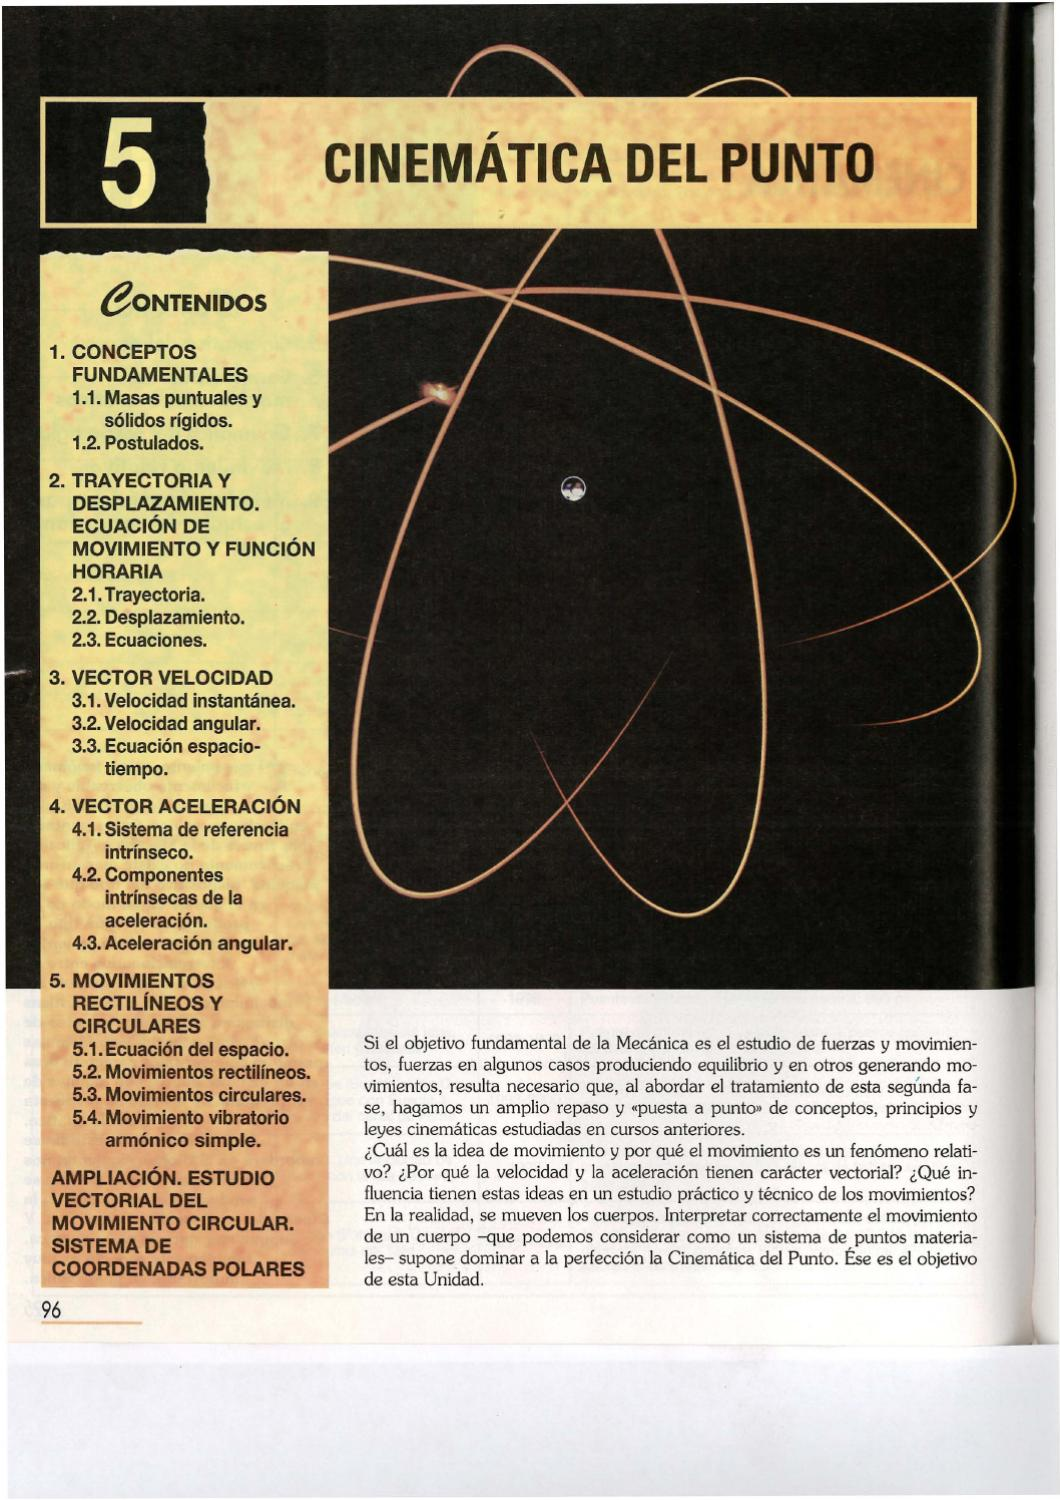 05 CINEMATICA DEL PUNTO by Secundino Sáenz - issuu